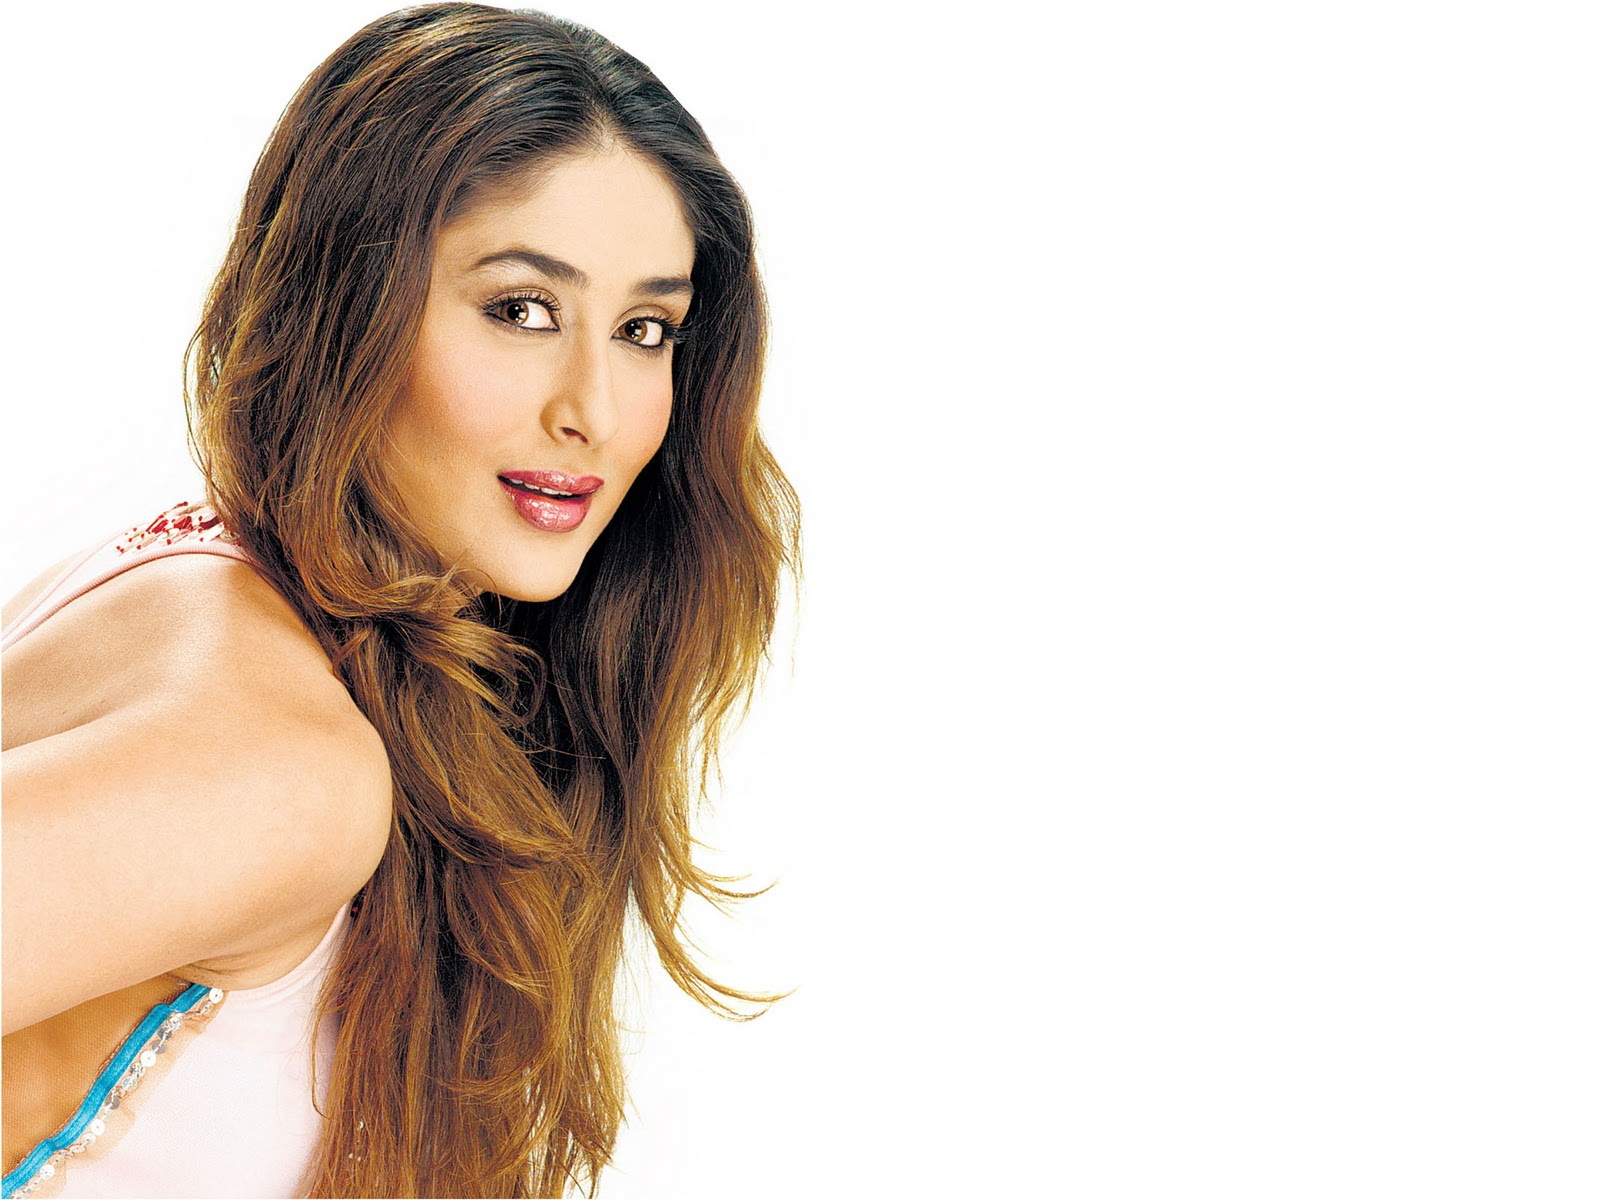 http://3.bp.blogspot.com/-N1NSfNJGhy8/TdGAghaPhRI/AAAAAAAAAB4/9AWjksIv2Dc/s1600/The-best-top-desktop-kareena-kapoor-wallpapers-hd-kareena-kapoor-wallpaper-25.jpg